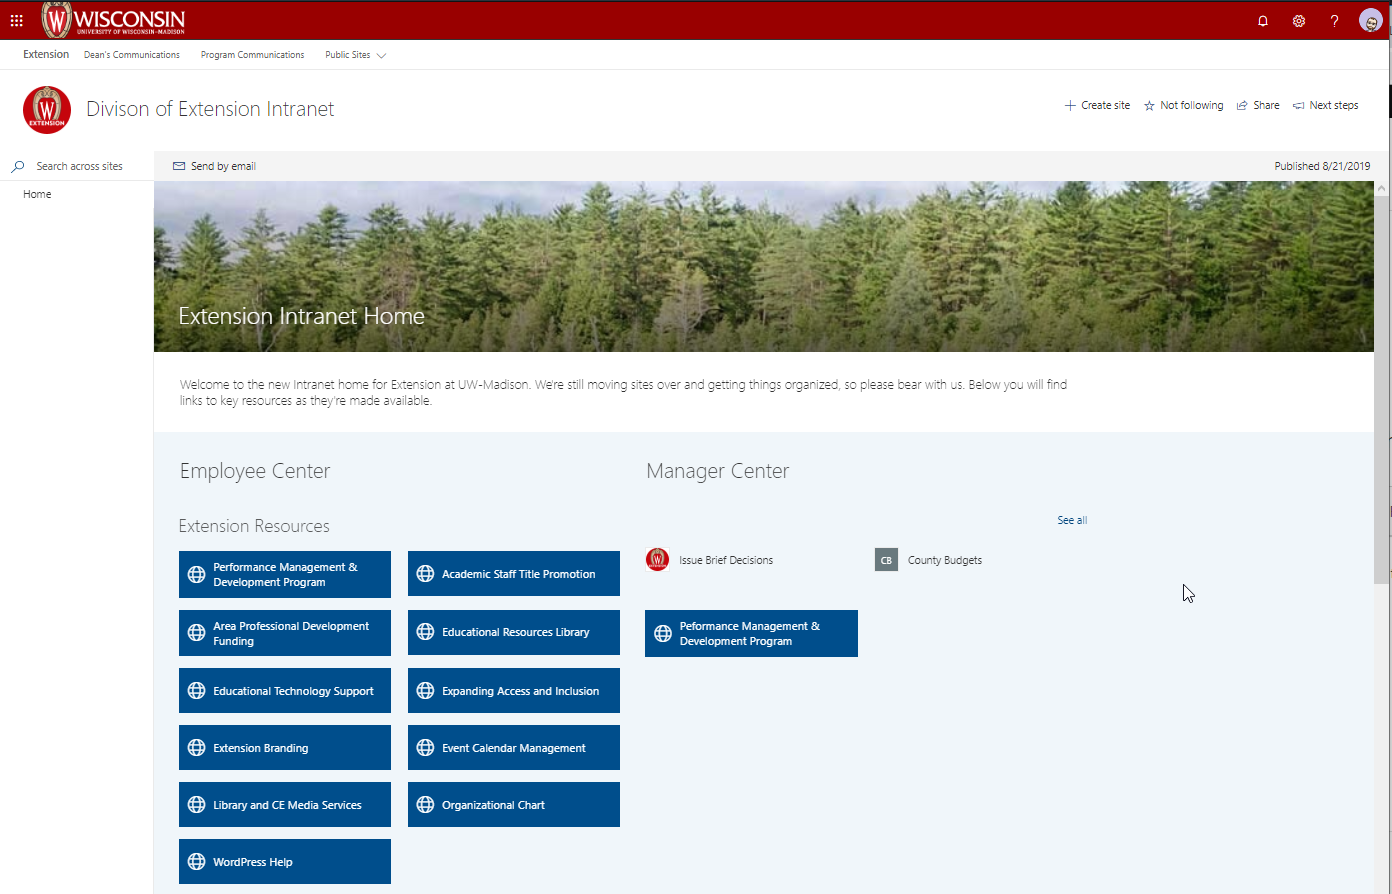 Division of Extension Intranet Homepage